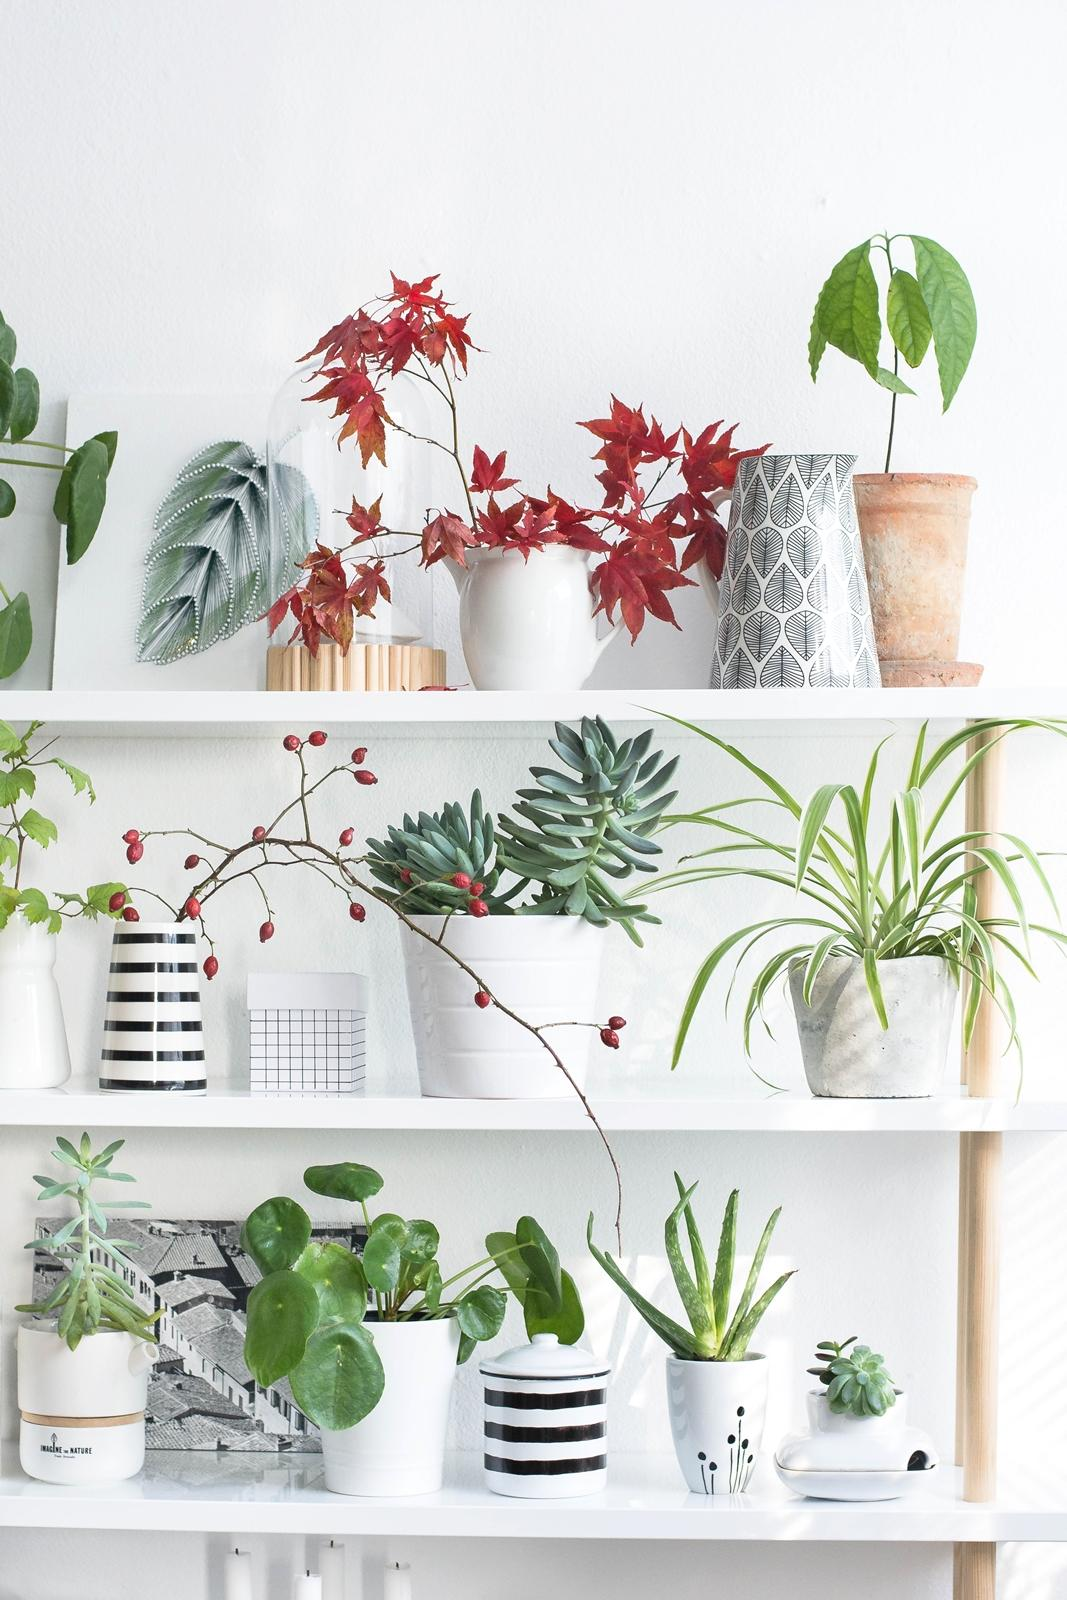 Greenery plantshelfie shelfie diy regal urbanjungle pilea succulents avocado plants  fca0f649 6df2 45fe 8730 cd5027b95985